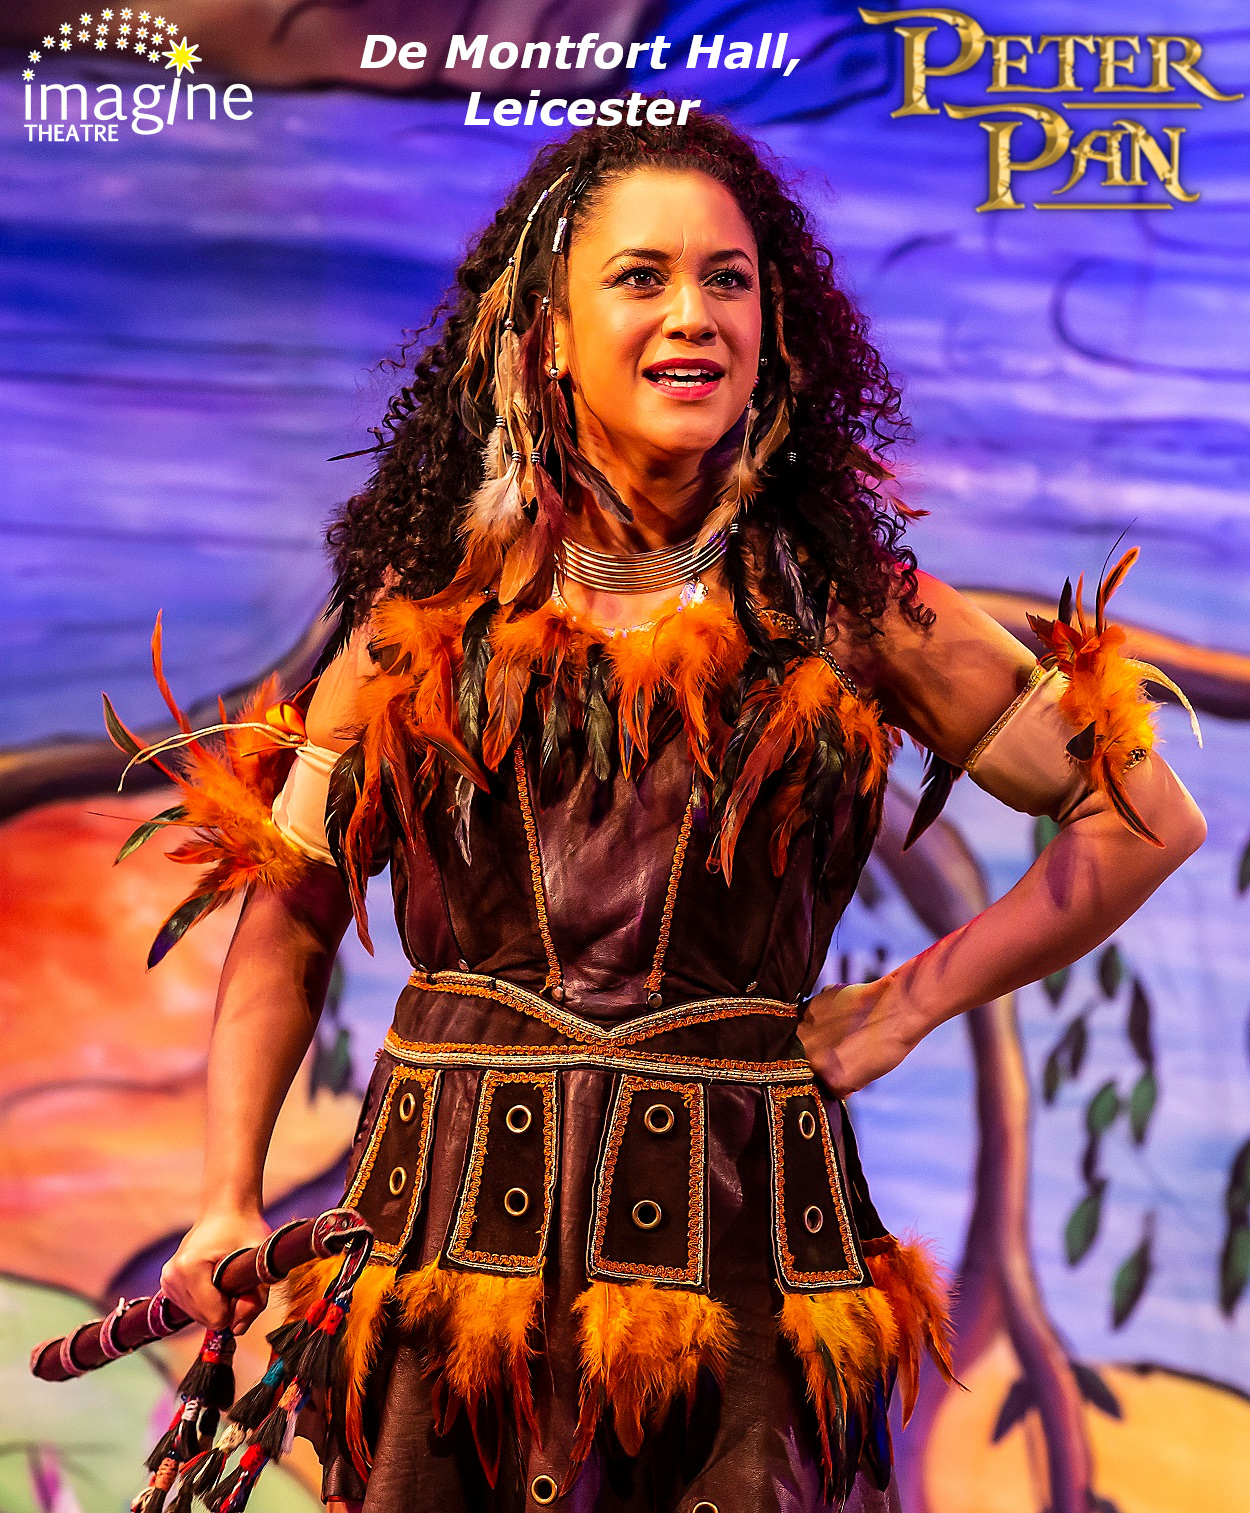 035_DMH Peter Pan_Pamela Raith Photography.jpg